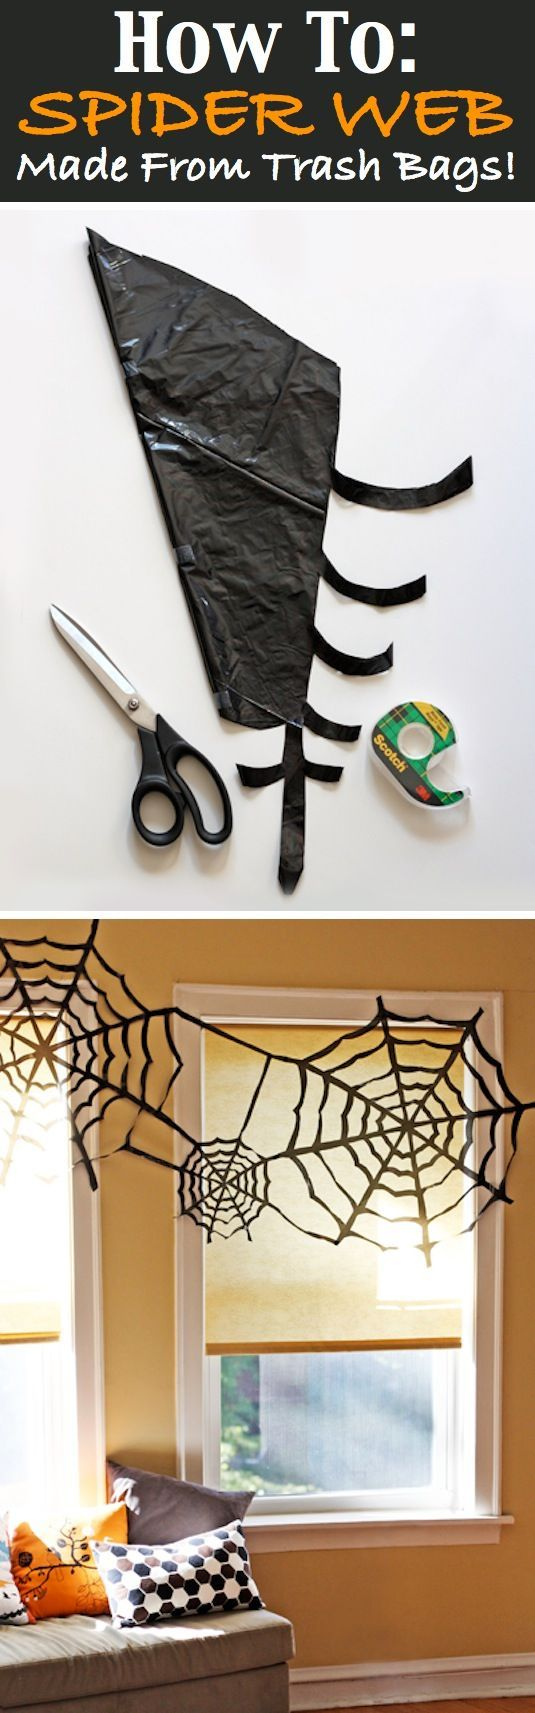 Decorate the house with these scary spider webs! Full instructions at: http://www.listotic.com/16-awesome-homemade-halloween-decorations/15/#_a5y_p=995147